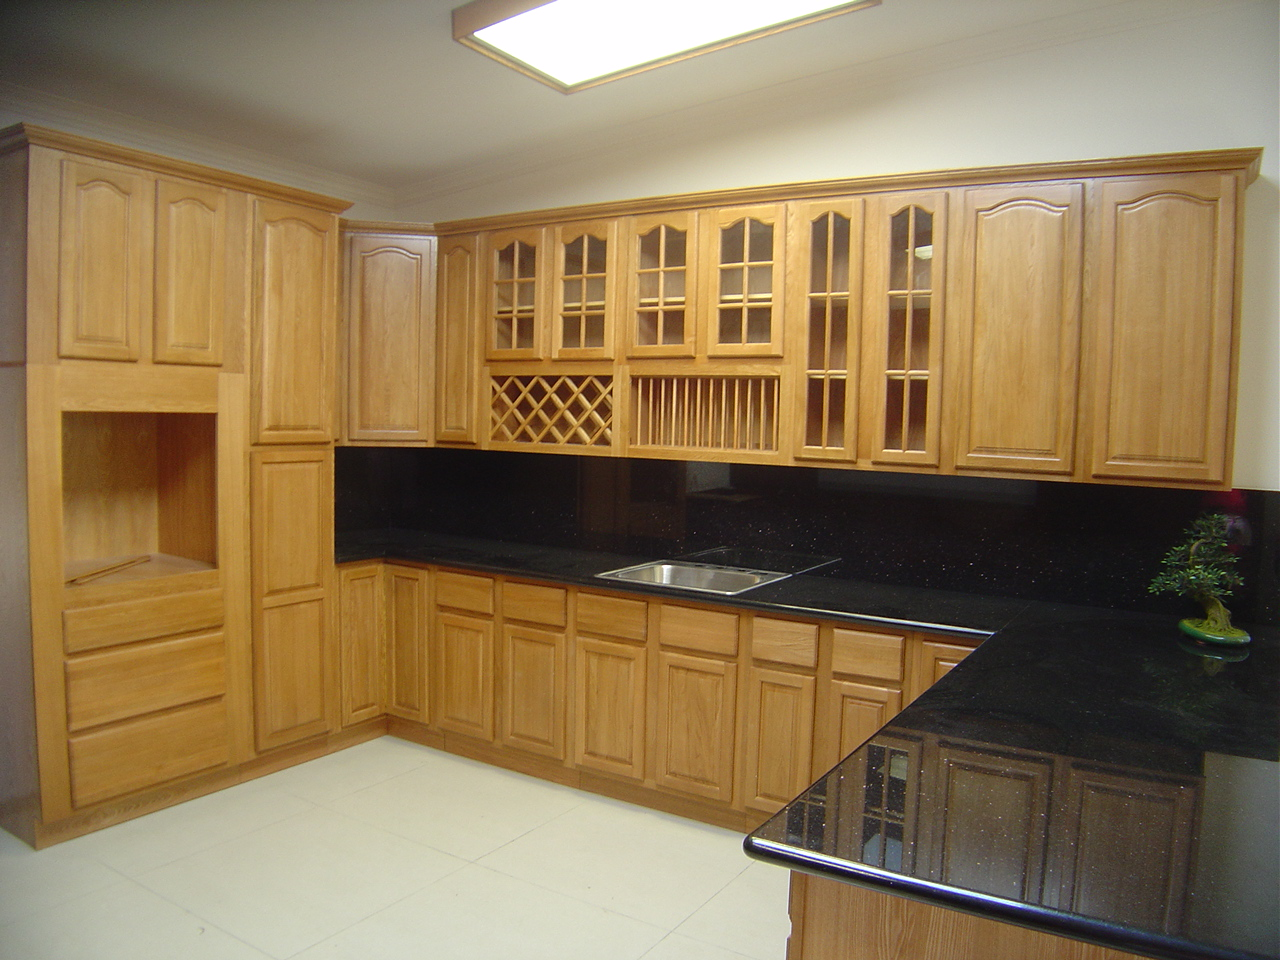 Special Kitchen Cabinet Design and Decor